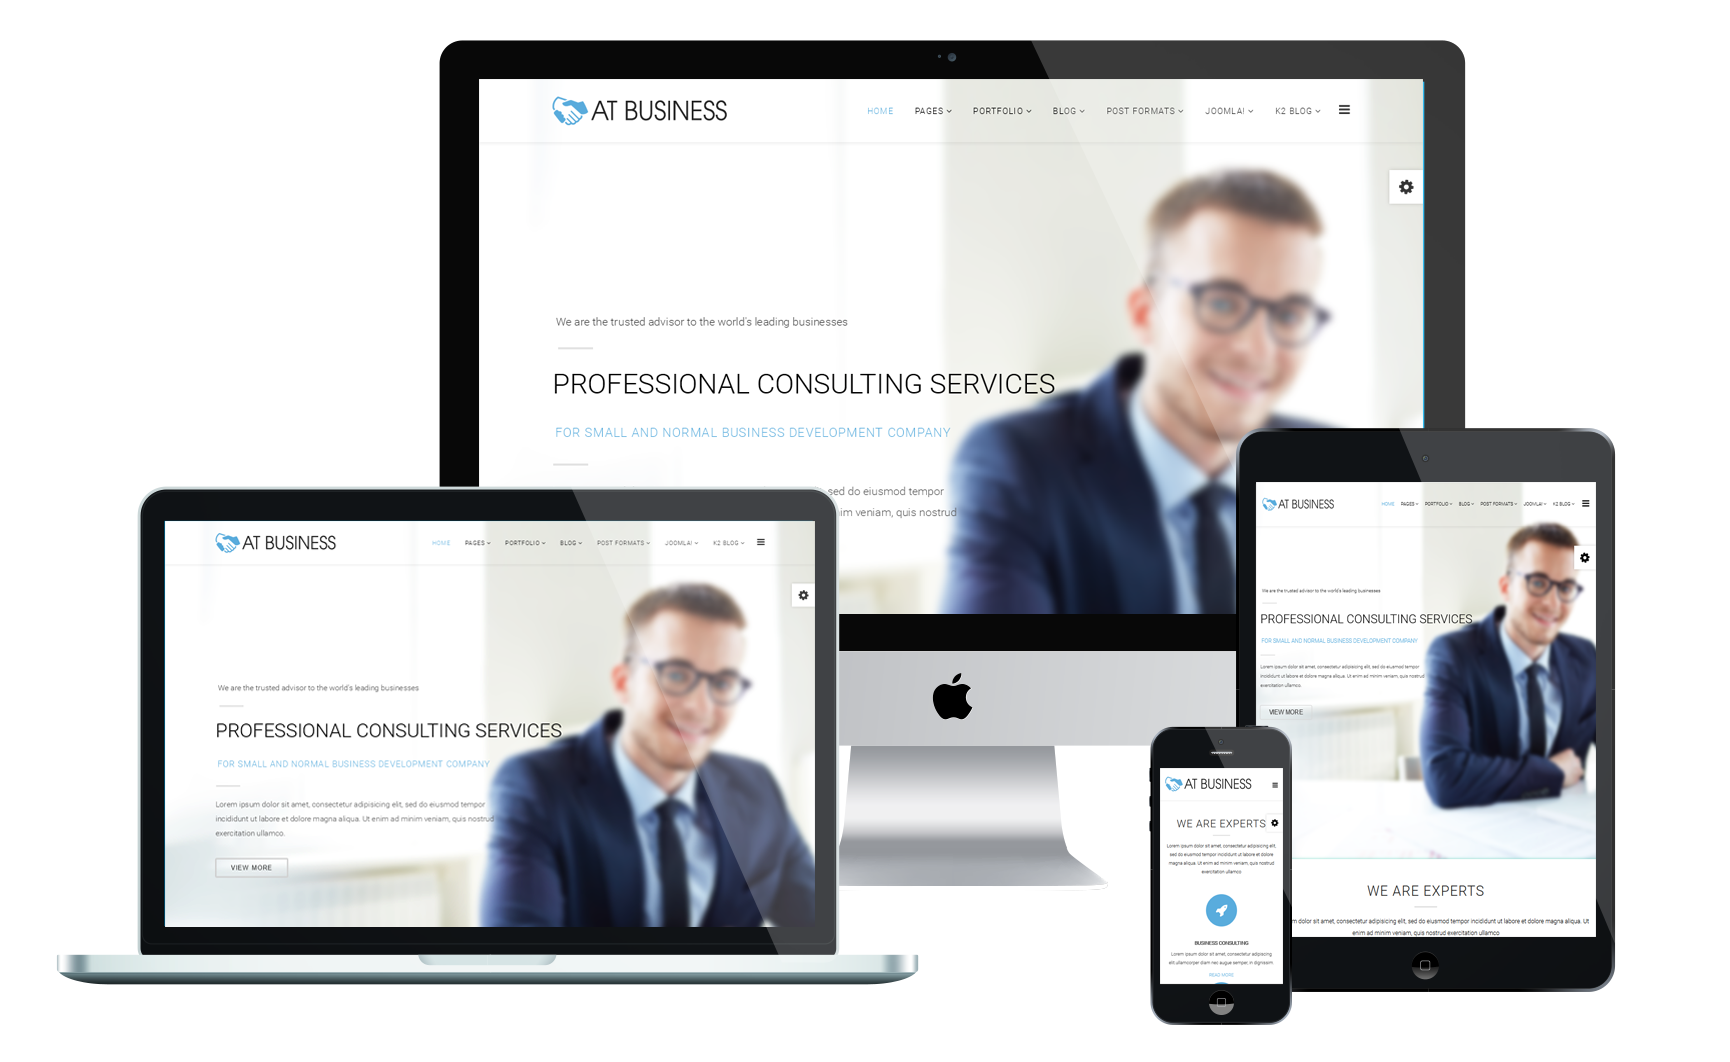 at-business-responsive-layout-min.png